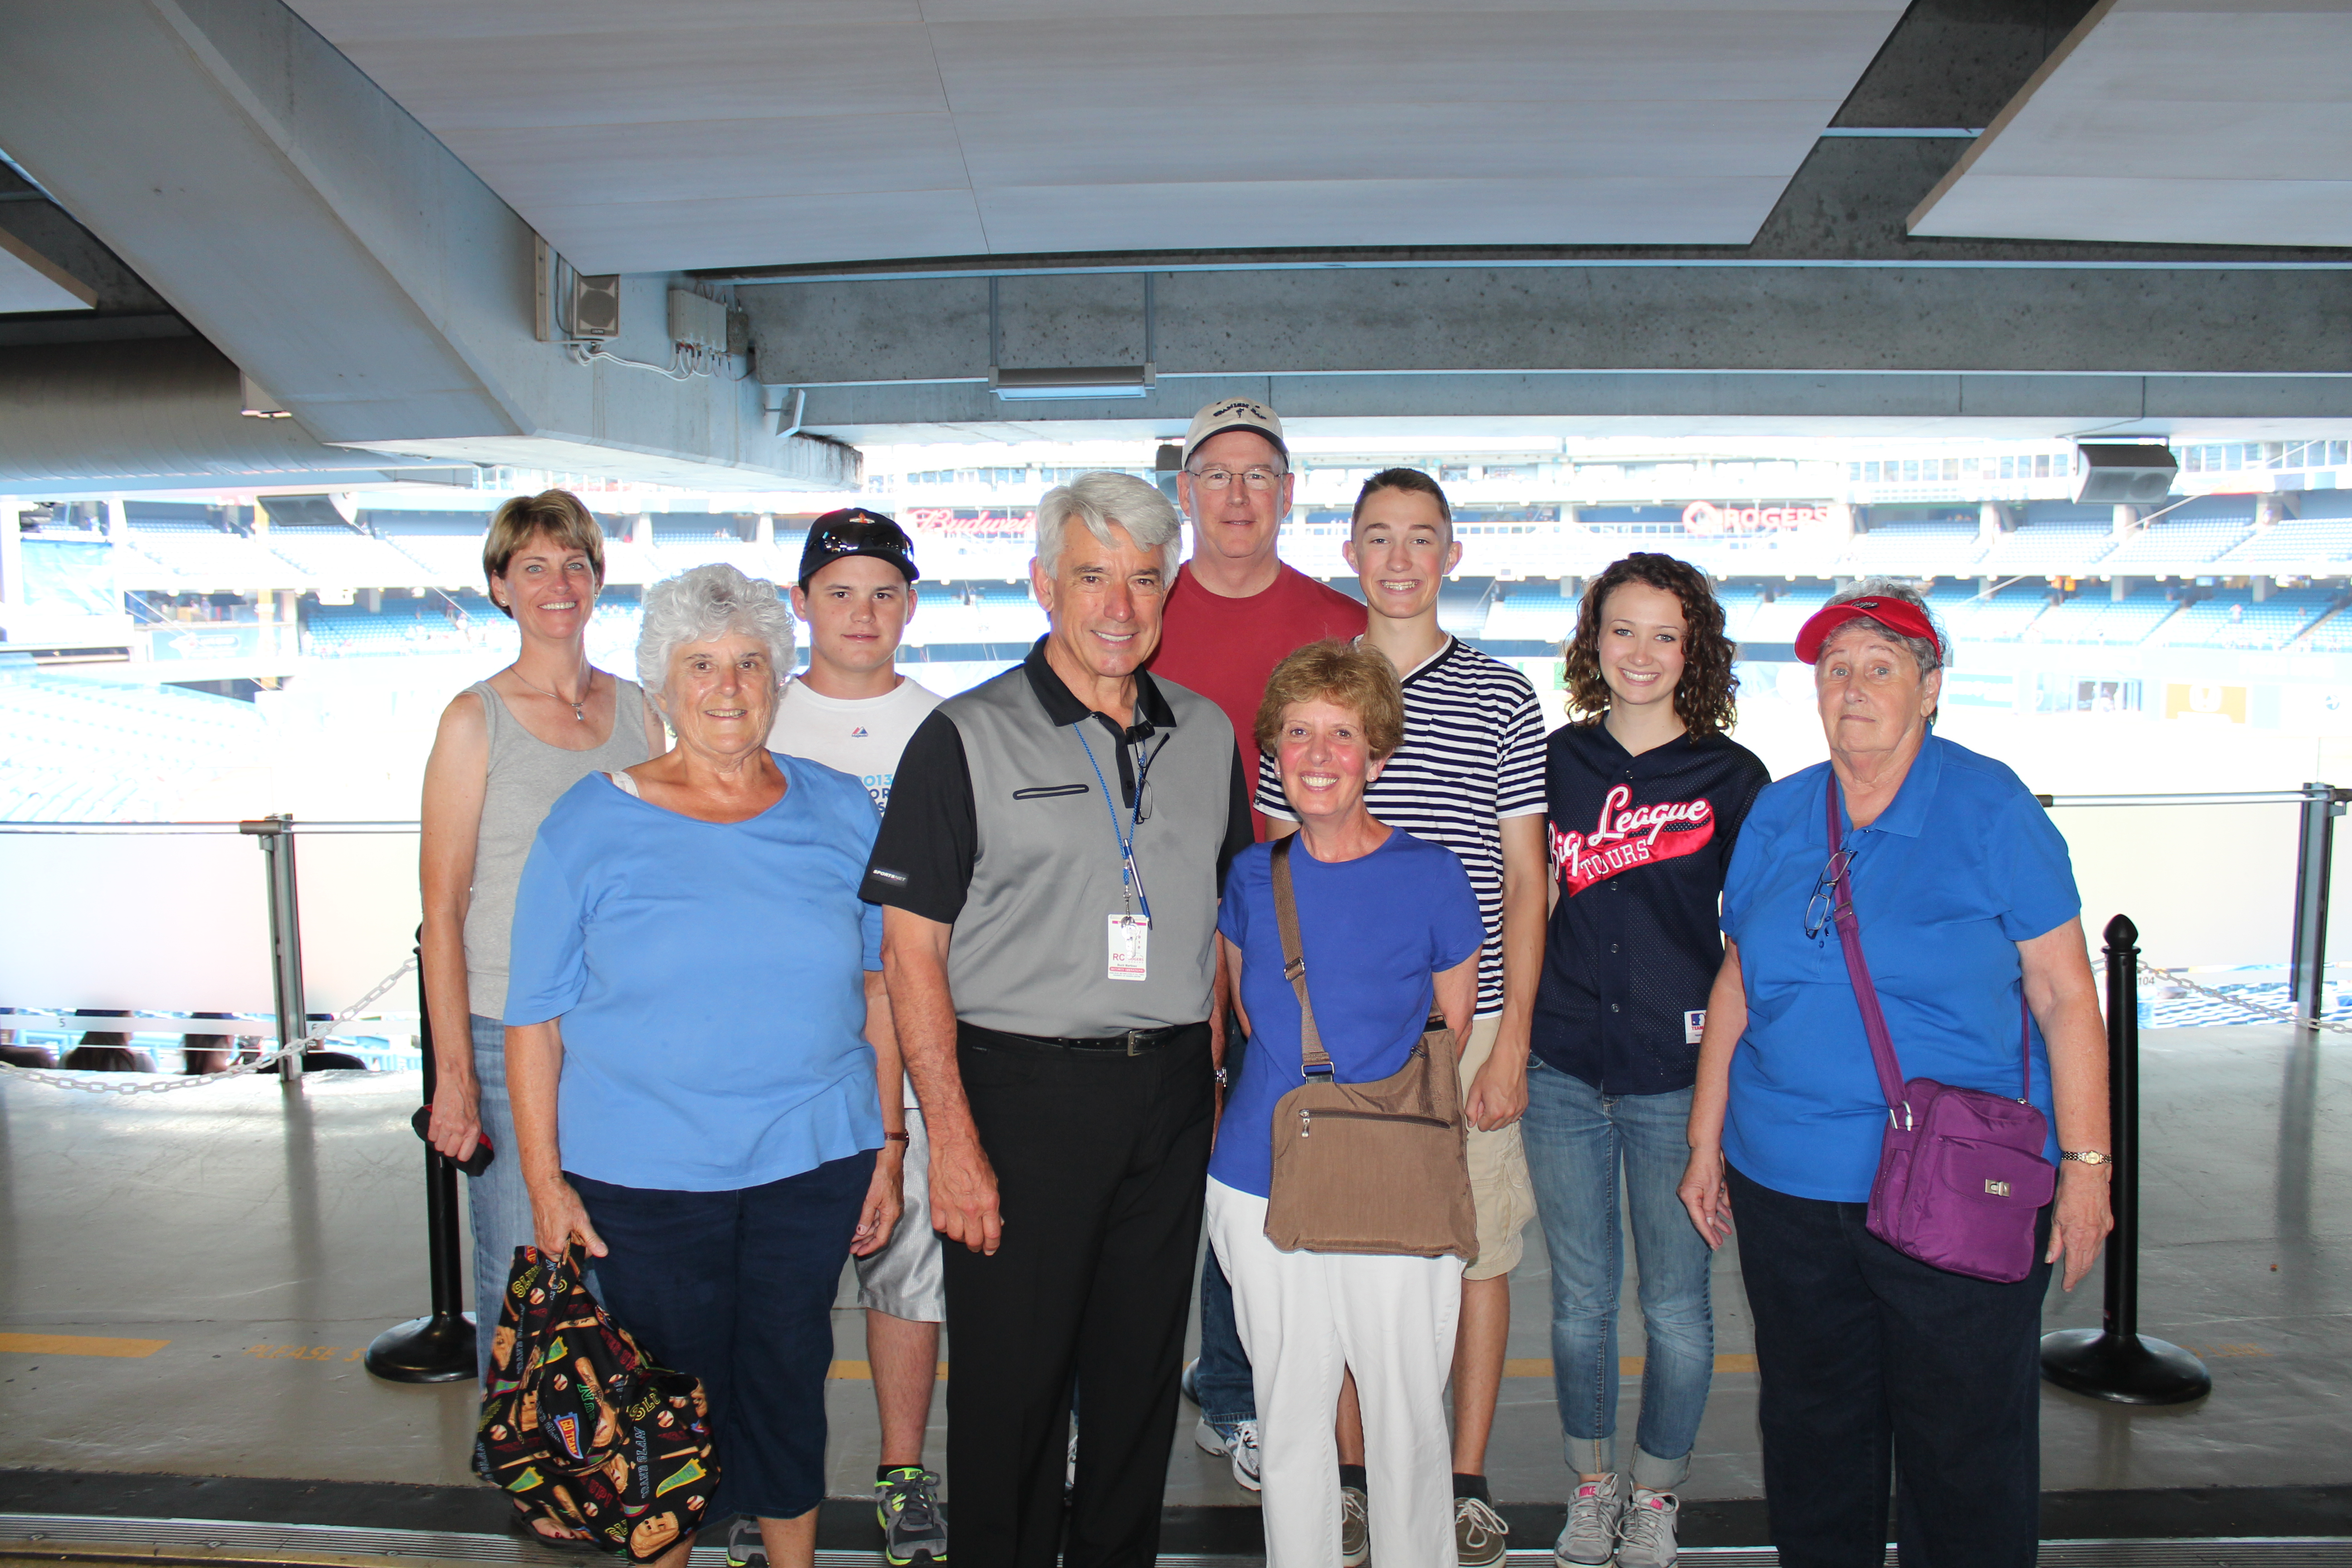 2014 group w Buck at Rogers Centre